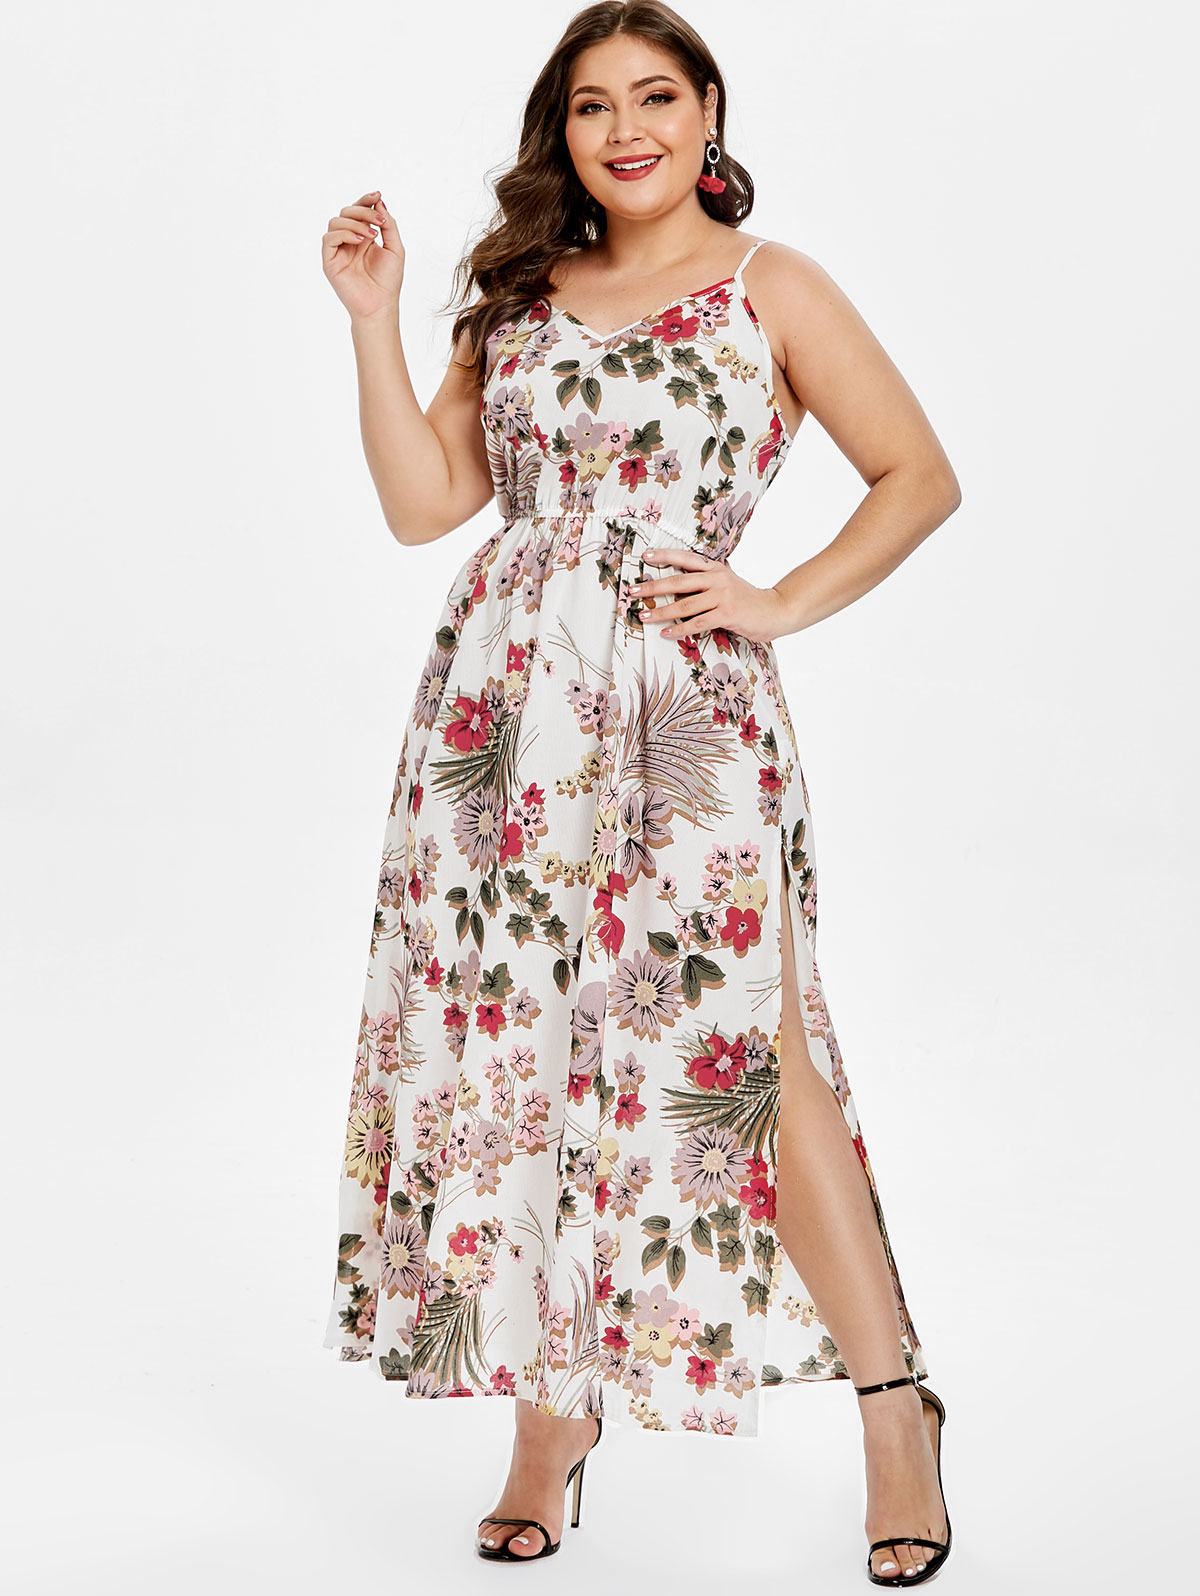 f6e21c4617d Wipalo Women Summer Plus Size Floral Print Belted Slip Dress Spaghetti Strap  Backless Casual Maxi Dress